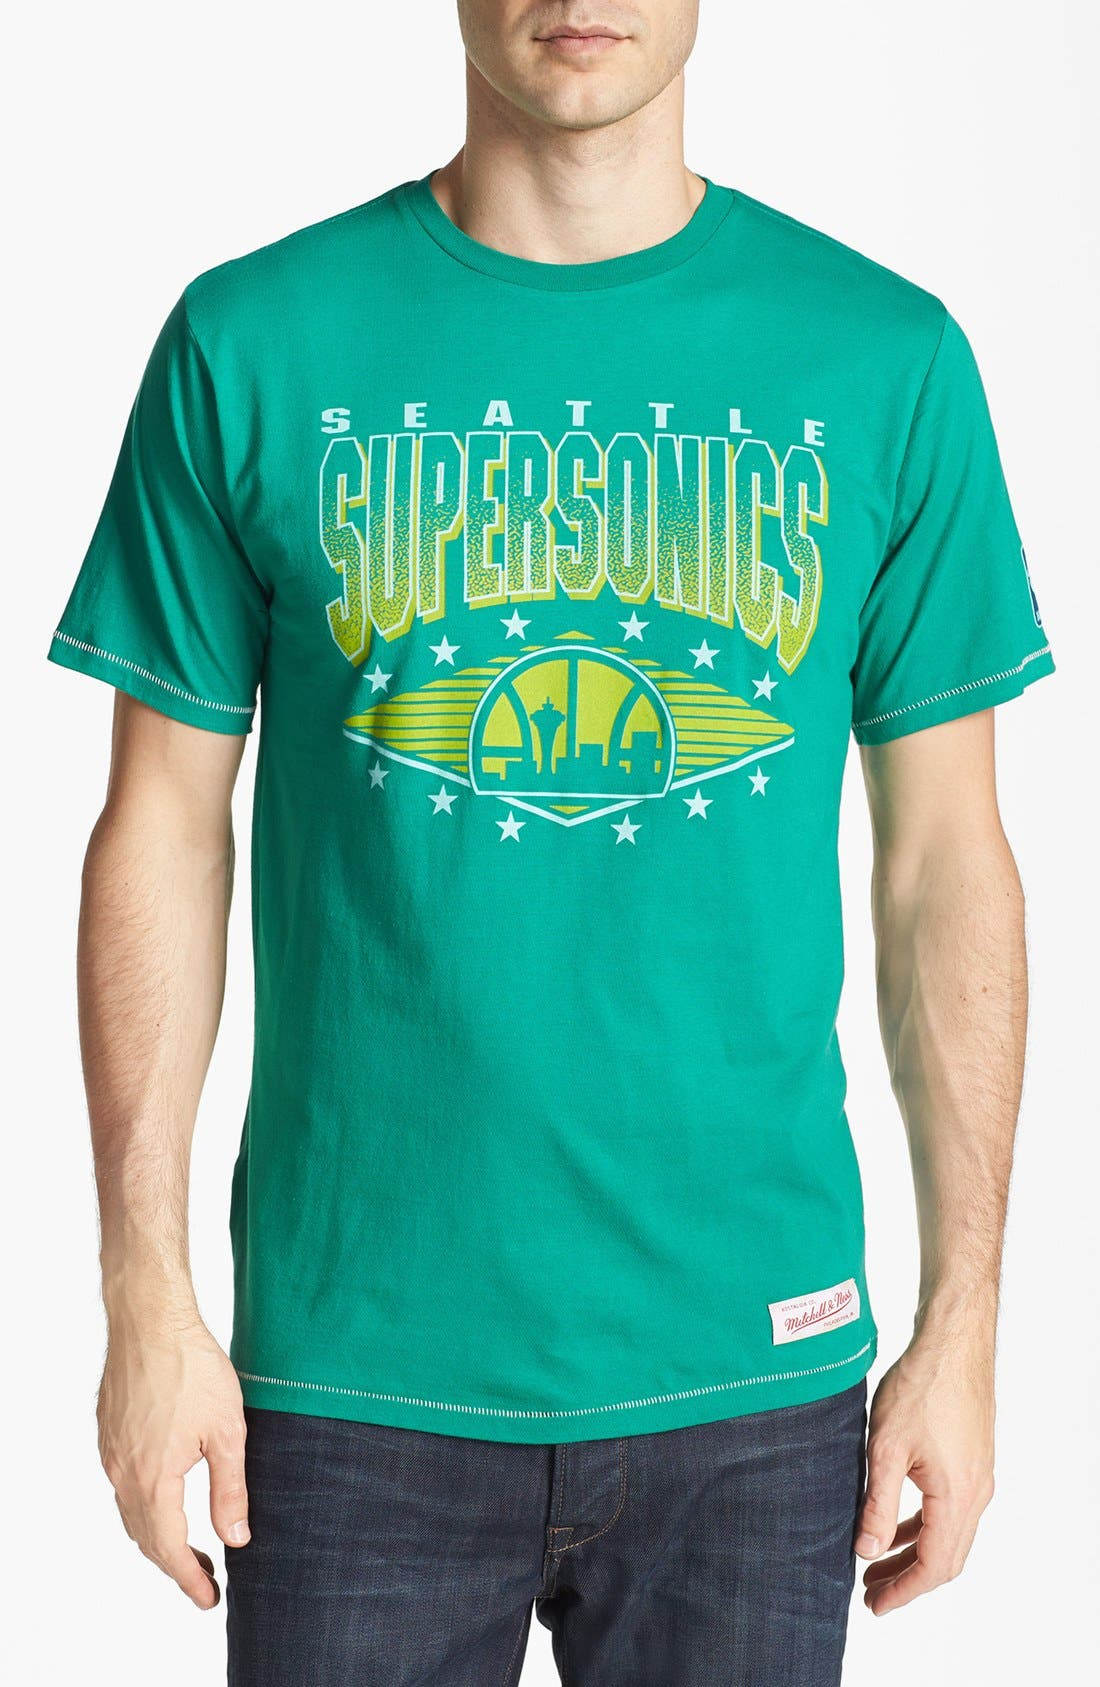 'Seattle Supersonics' T-Shirt,                         Main,                         color, Kelly Green